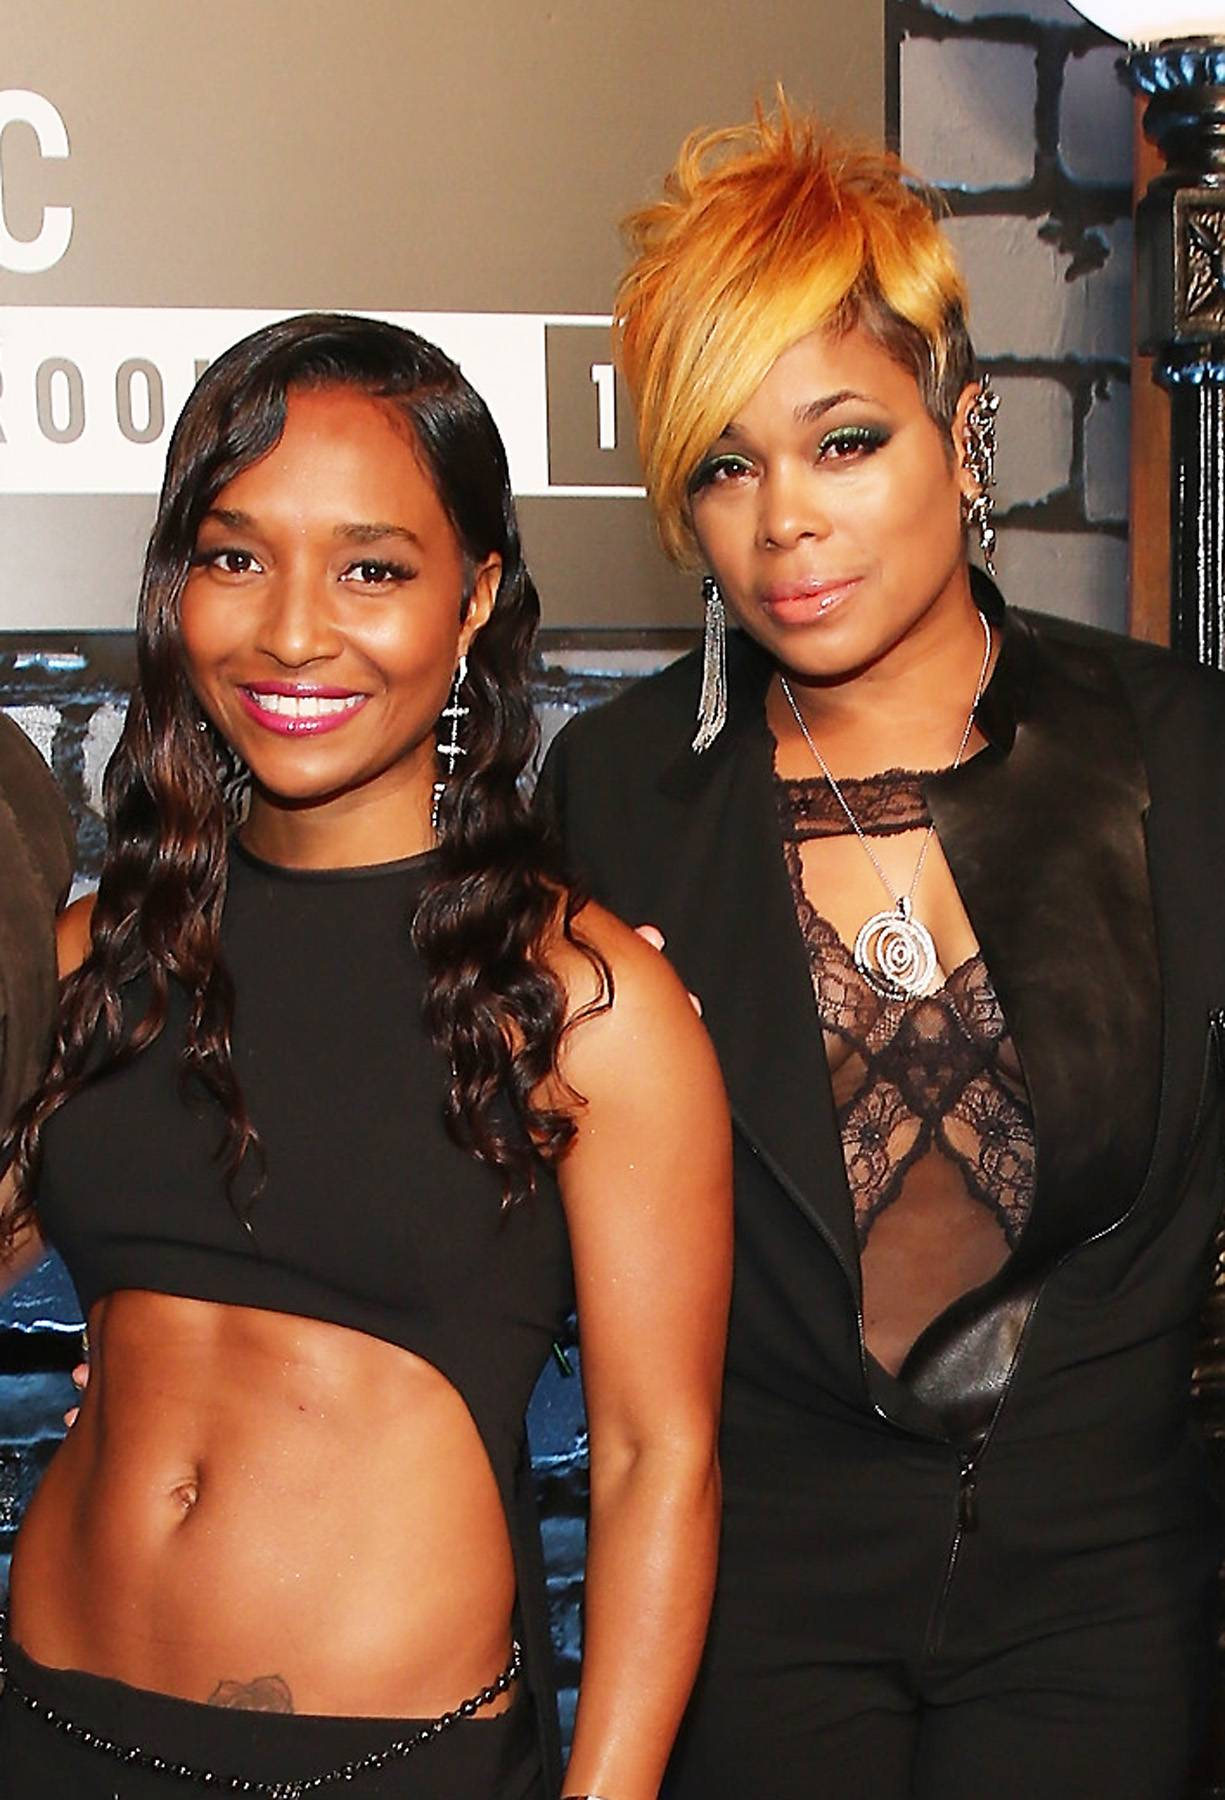 """TLC Is Back! - For the first time since 1999, TLC has entered the top 10 on the Billboard Charts on J. Cole's """"Crooked Smile."""" Besides having their biopic debut next month, we hope that TLC gives us all new music soon because R&B's been missing them!  (Photo: Neilson Barnard/Getty Images for MTV)"""